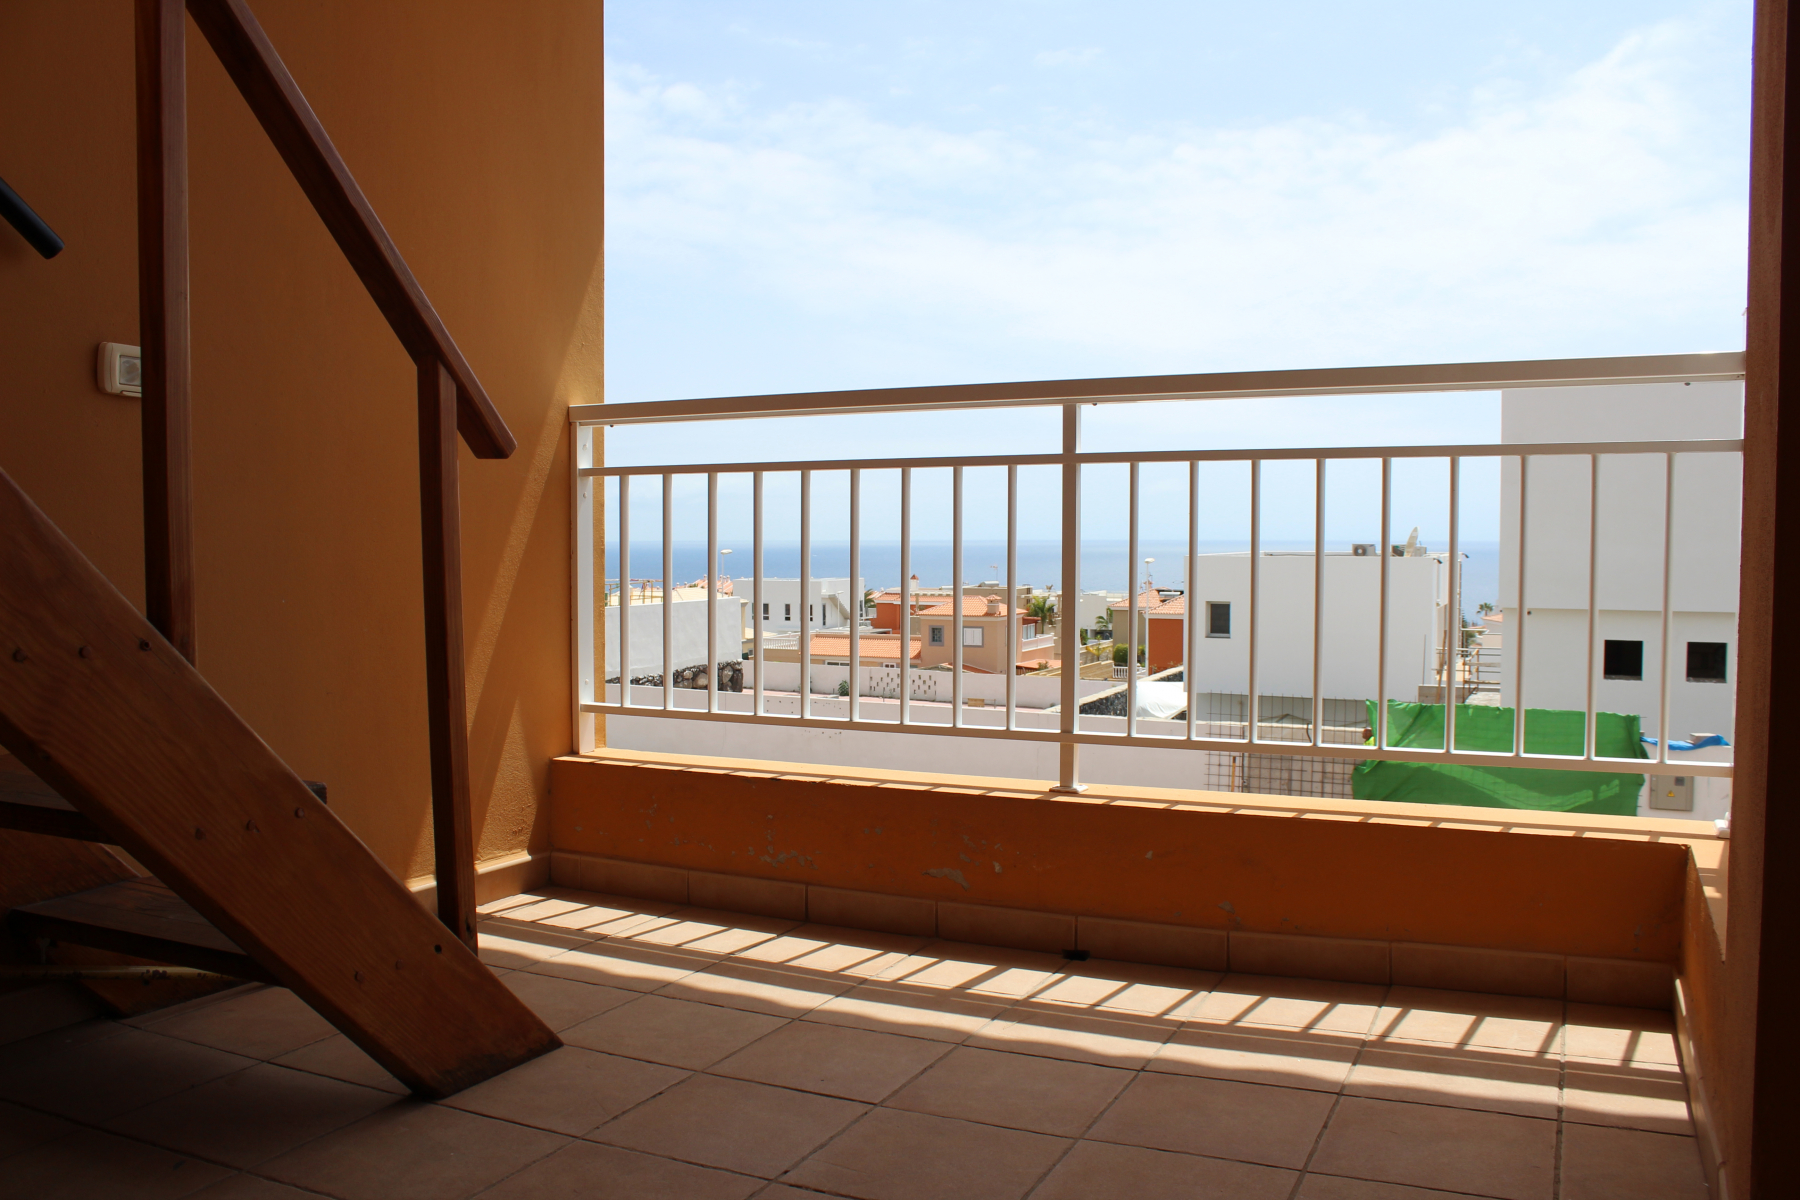 Properties for Sale in Tenerife, Canary Islands, Spain | SylkWayStar Real Estate. Apartment with 2 bedrooms in Callao Salvaje. Image-25706